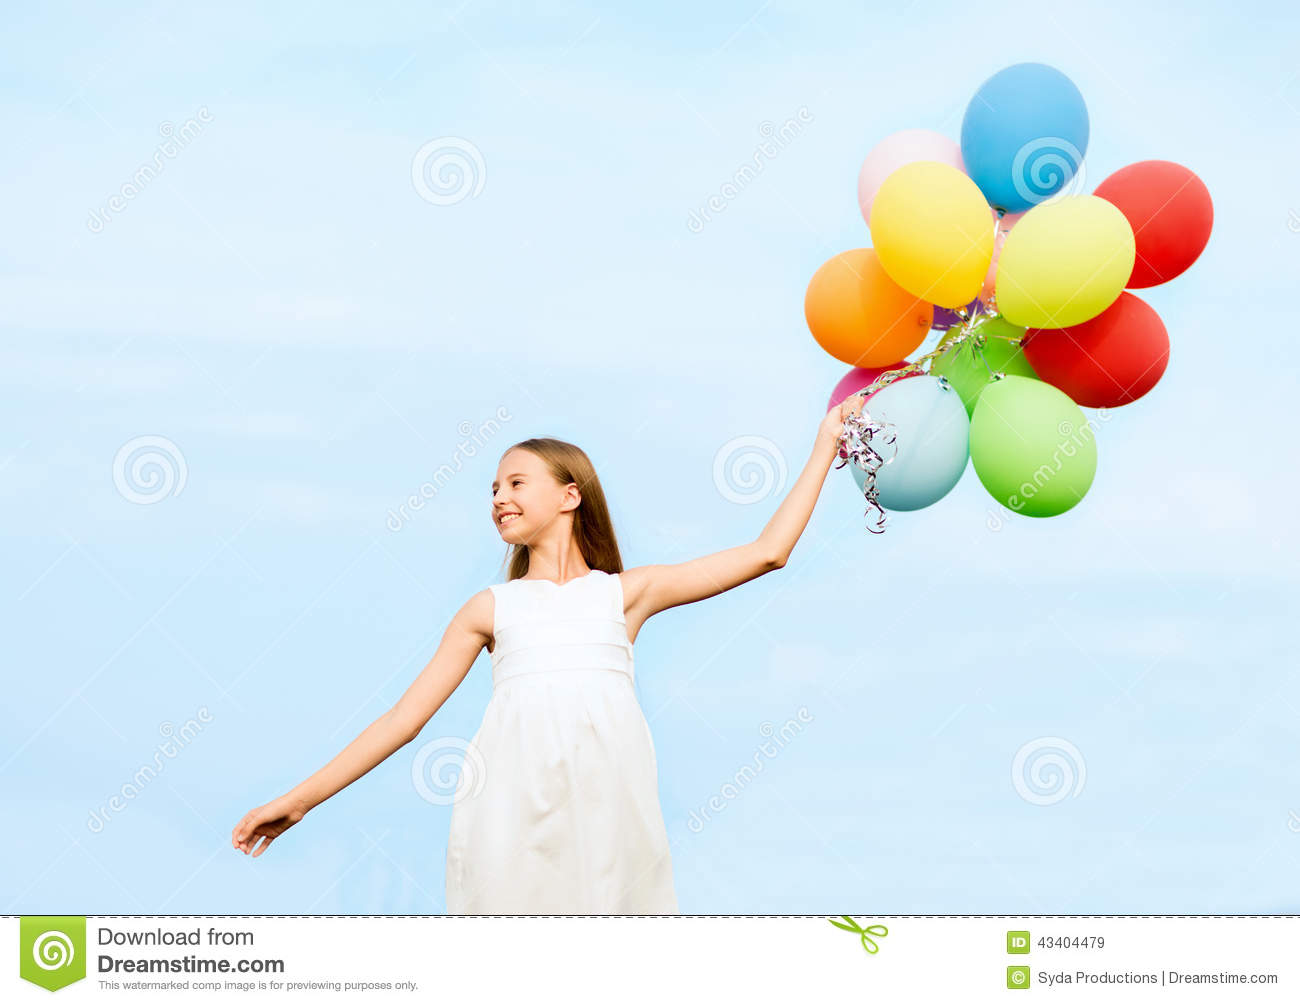 c51cb6ad9 Happy Girl With Colorful Balloons Stock Image - Image of flying ...